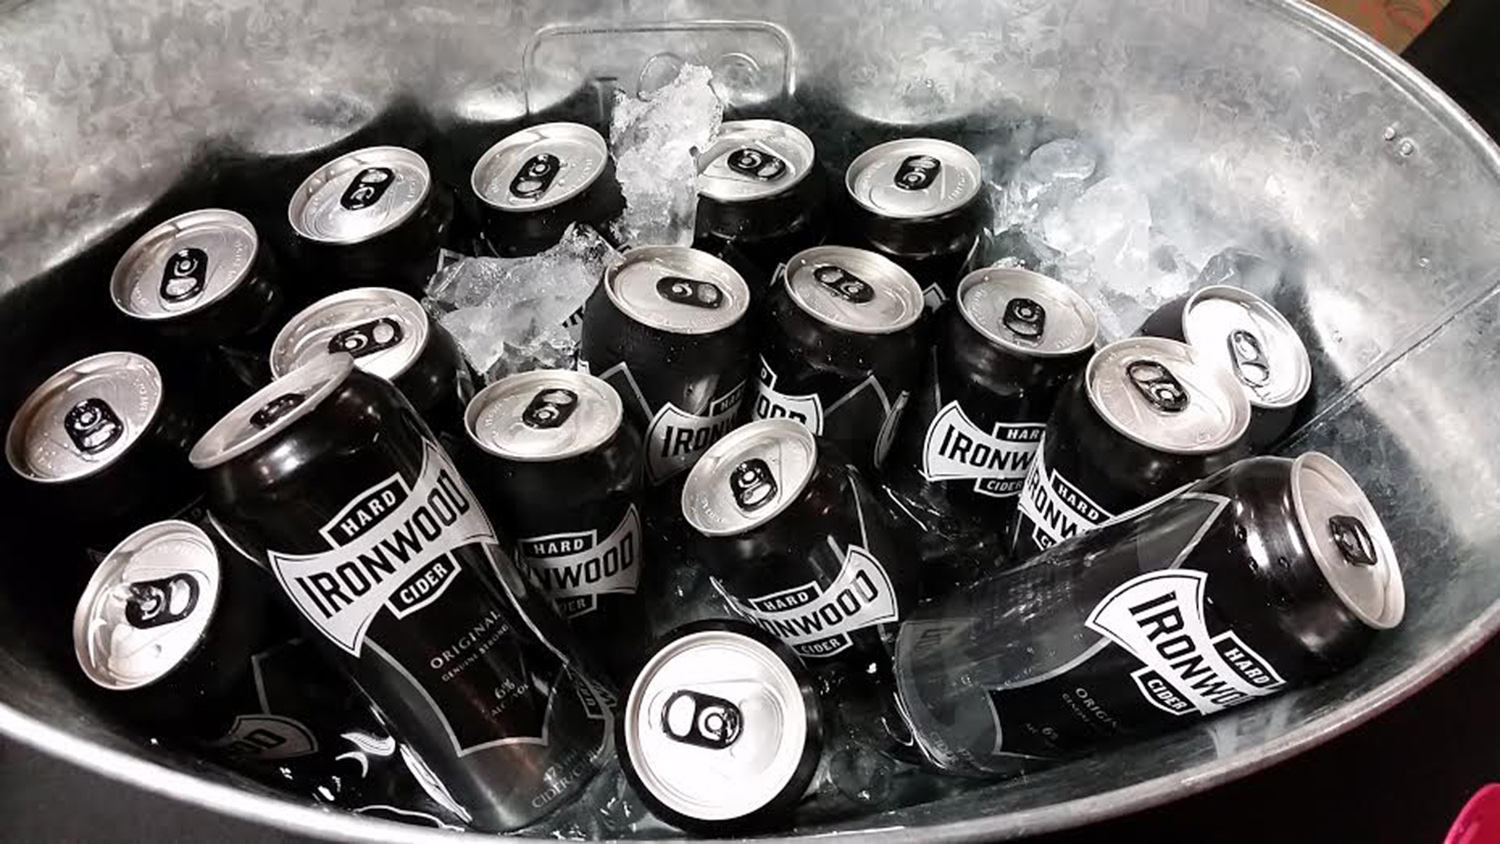 ironwood-cider-cans-in-bucket.jpg